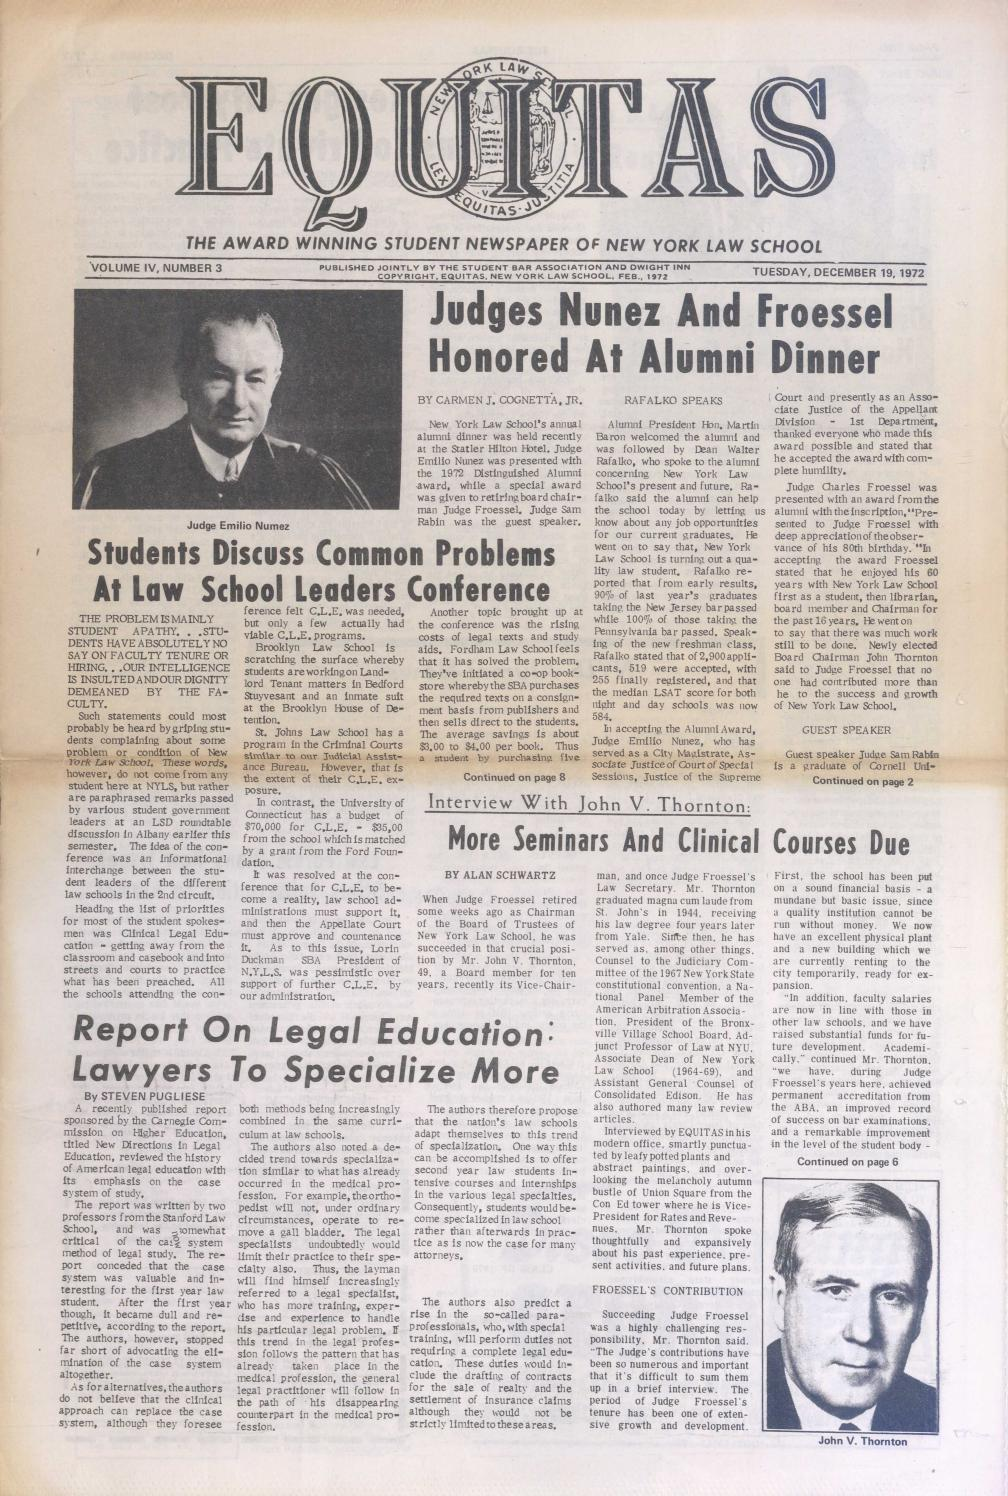 Equitas, vol IV, no  3, December 19, 1972 by New York Law